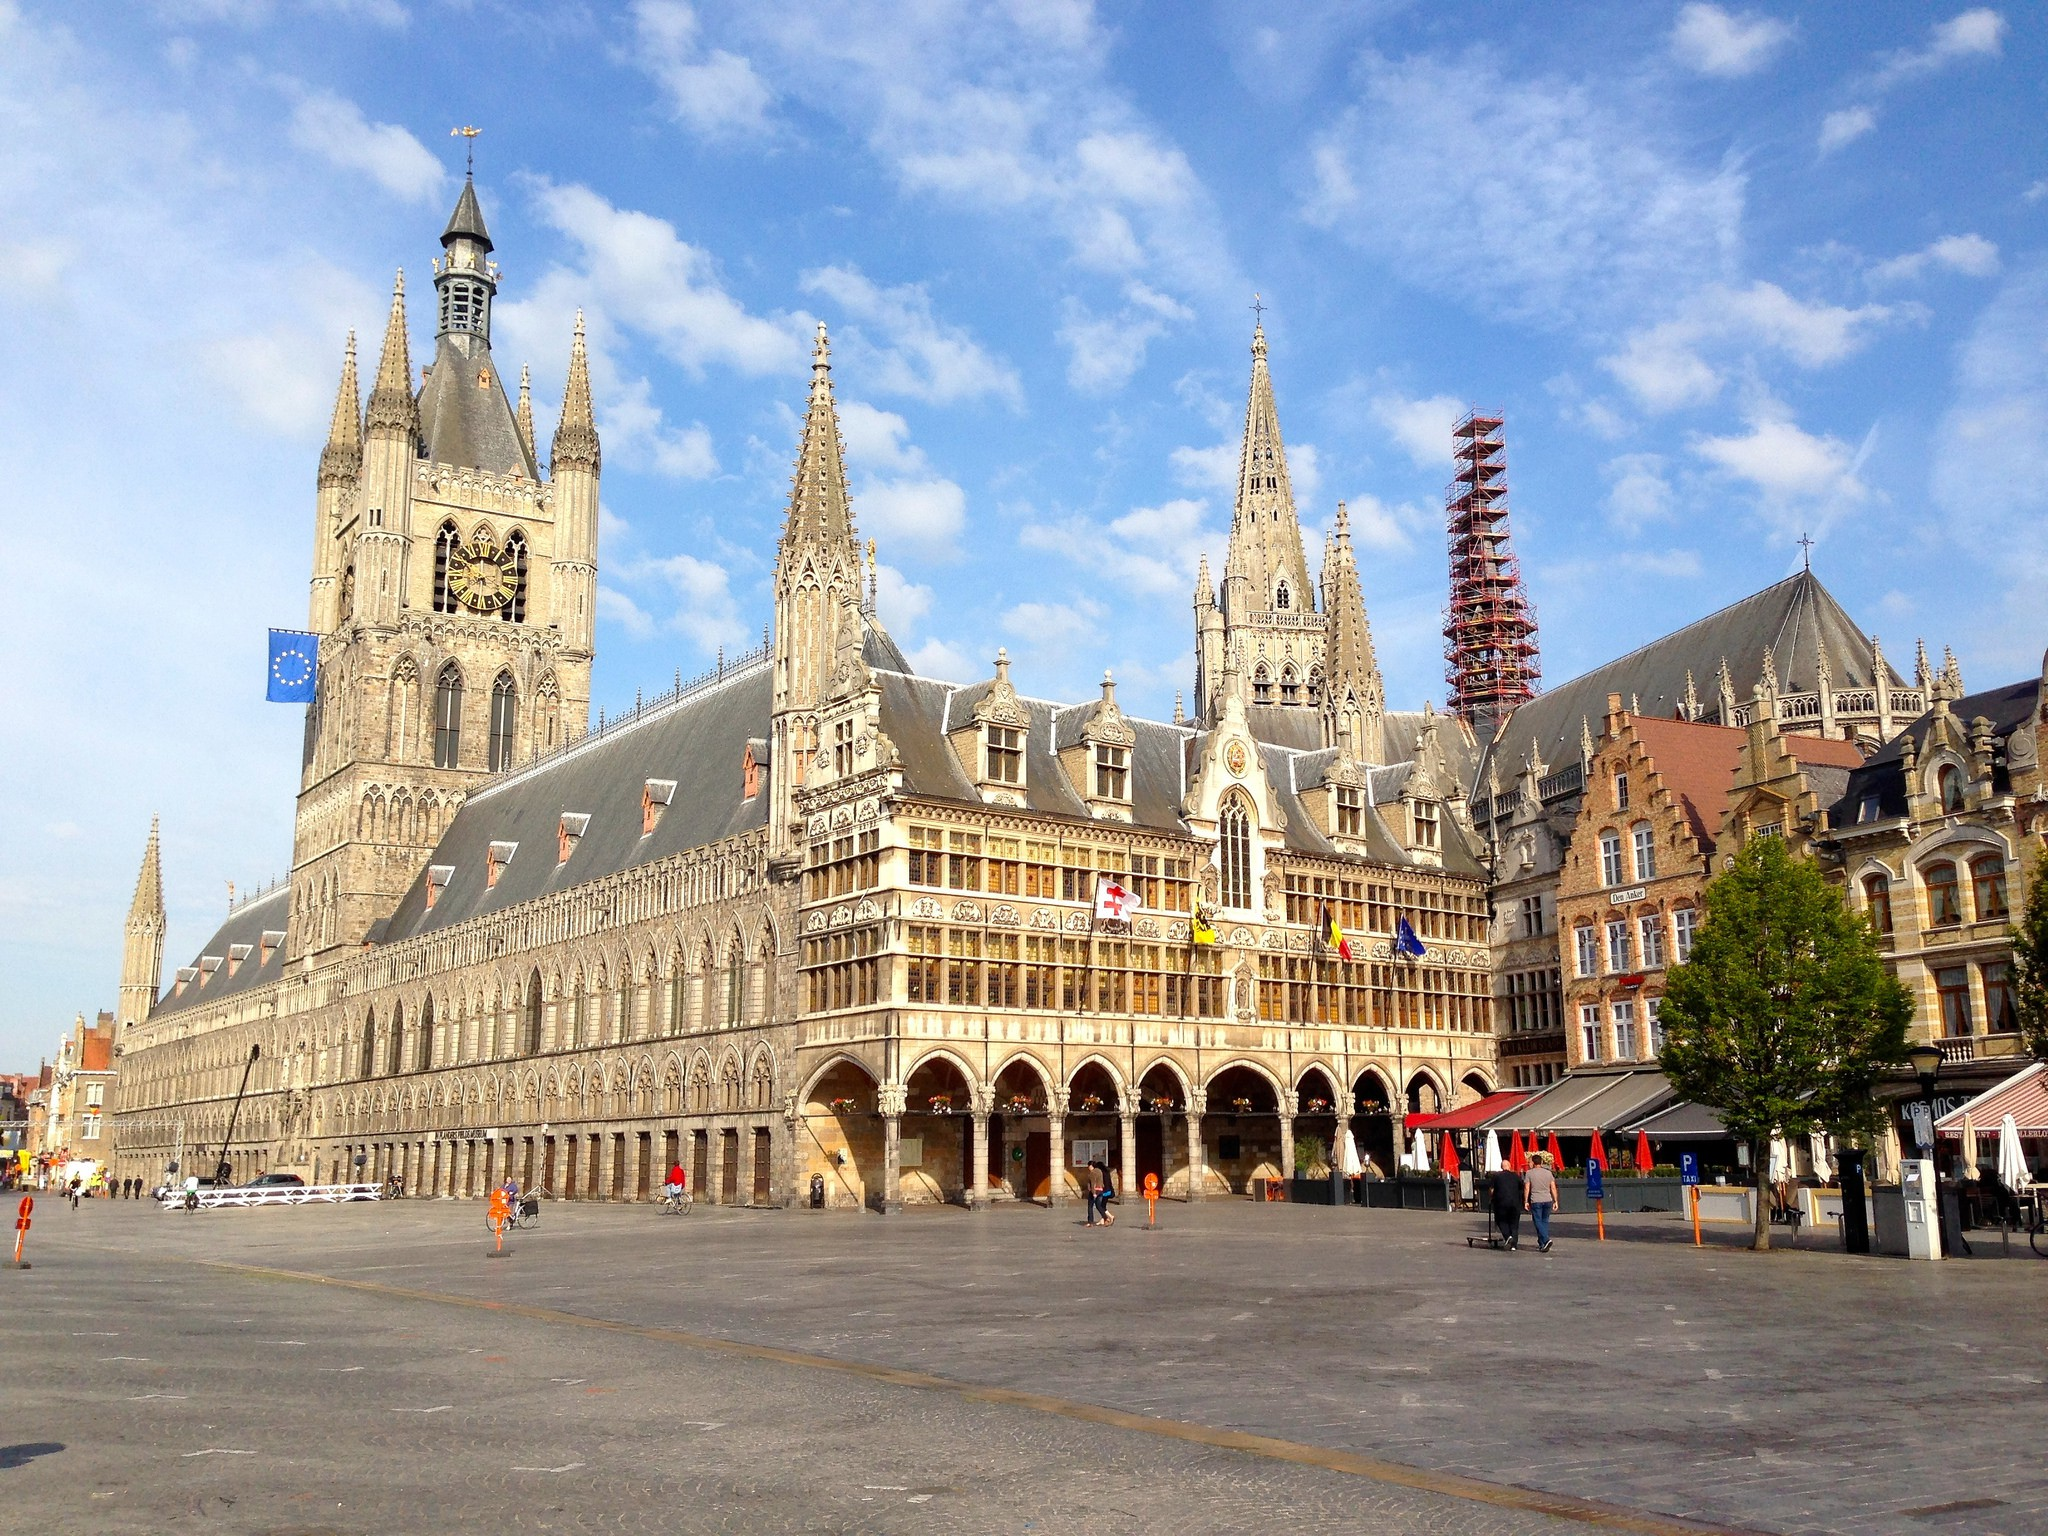 Ypres' main square with its imposing Cloth Hall   © Andrew Nash/Flickr